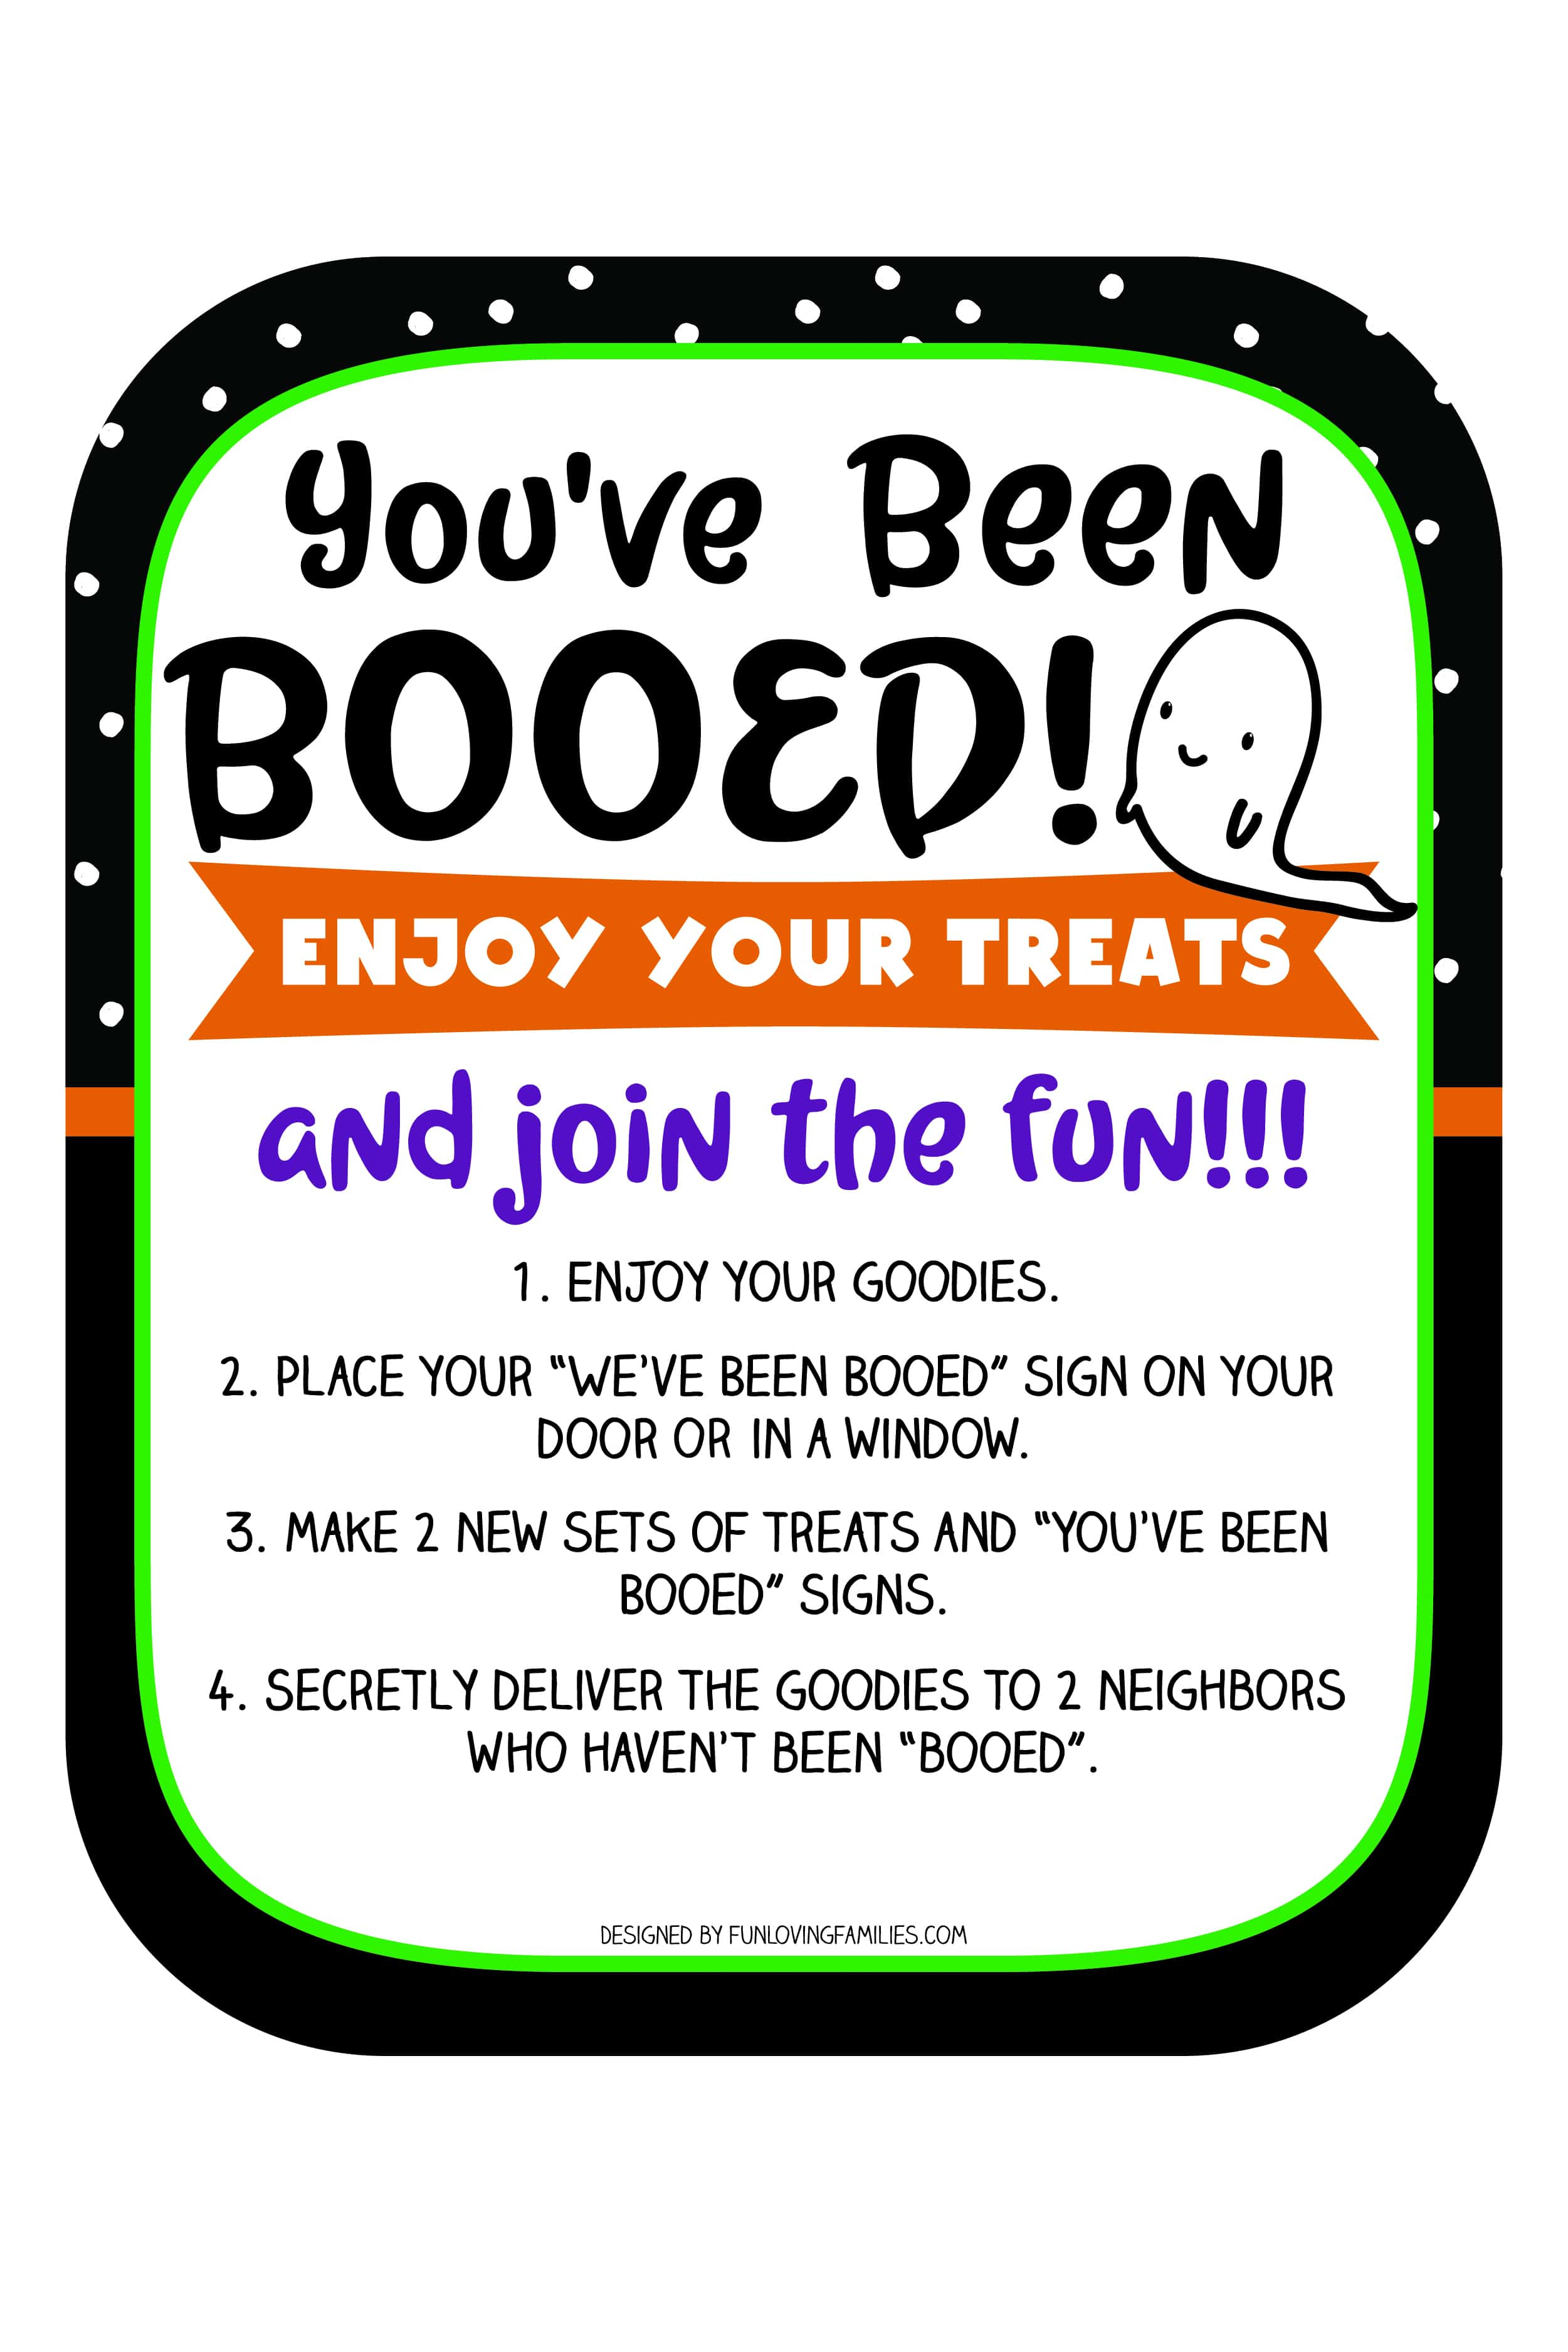 You've been Booed printable sign. Use this free printable to add to your Boo Basket so friends and neighbors can play along. #cute #halloweenprintables #booed #youvebeenbooed #ghost